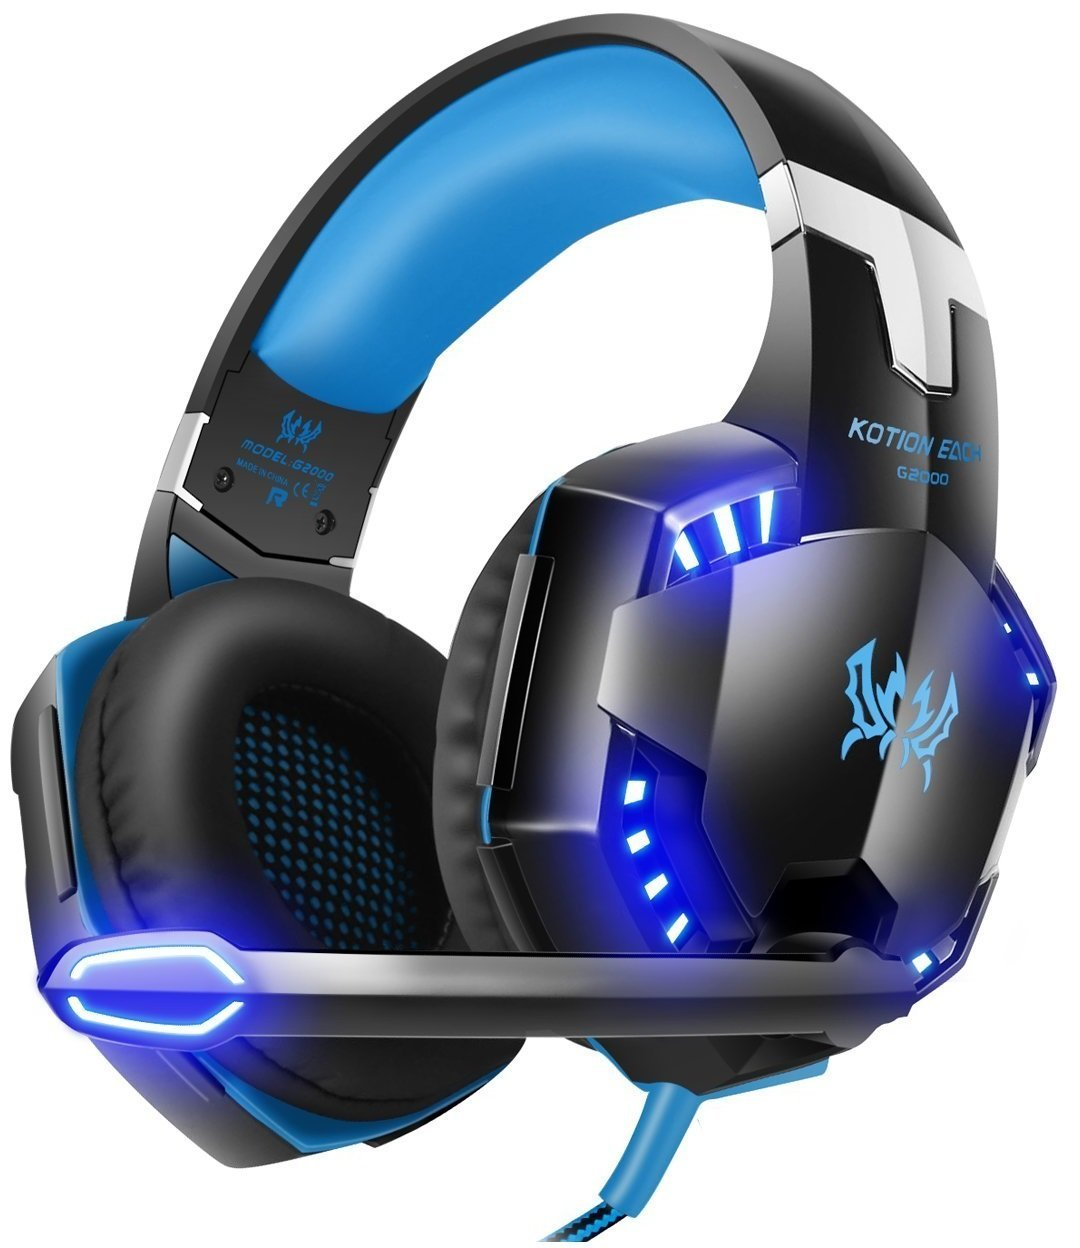 The Best Cheap Gaming Headsets - 15 Budget Headphones Gamers